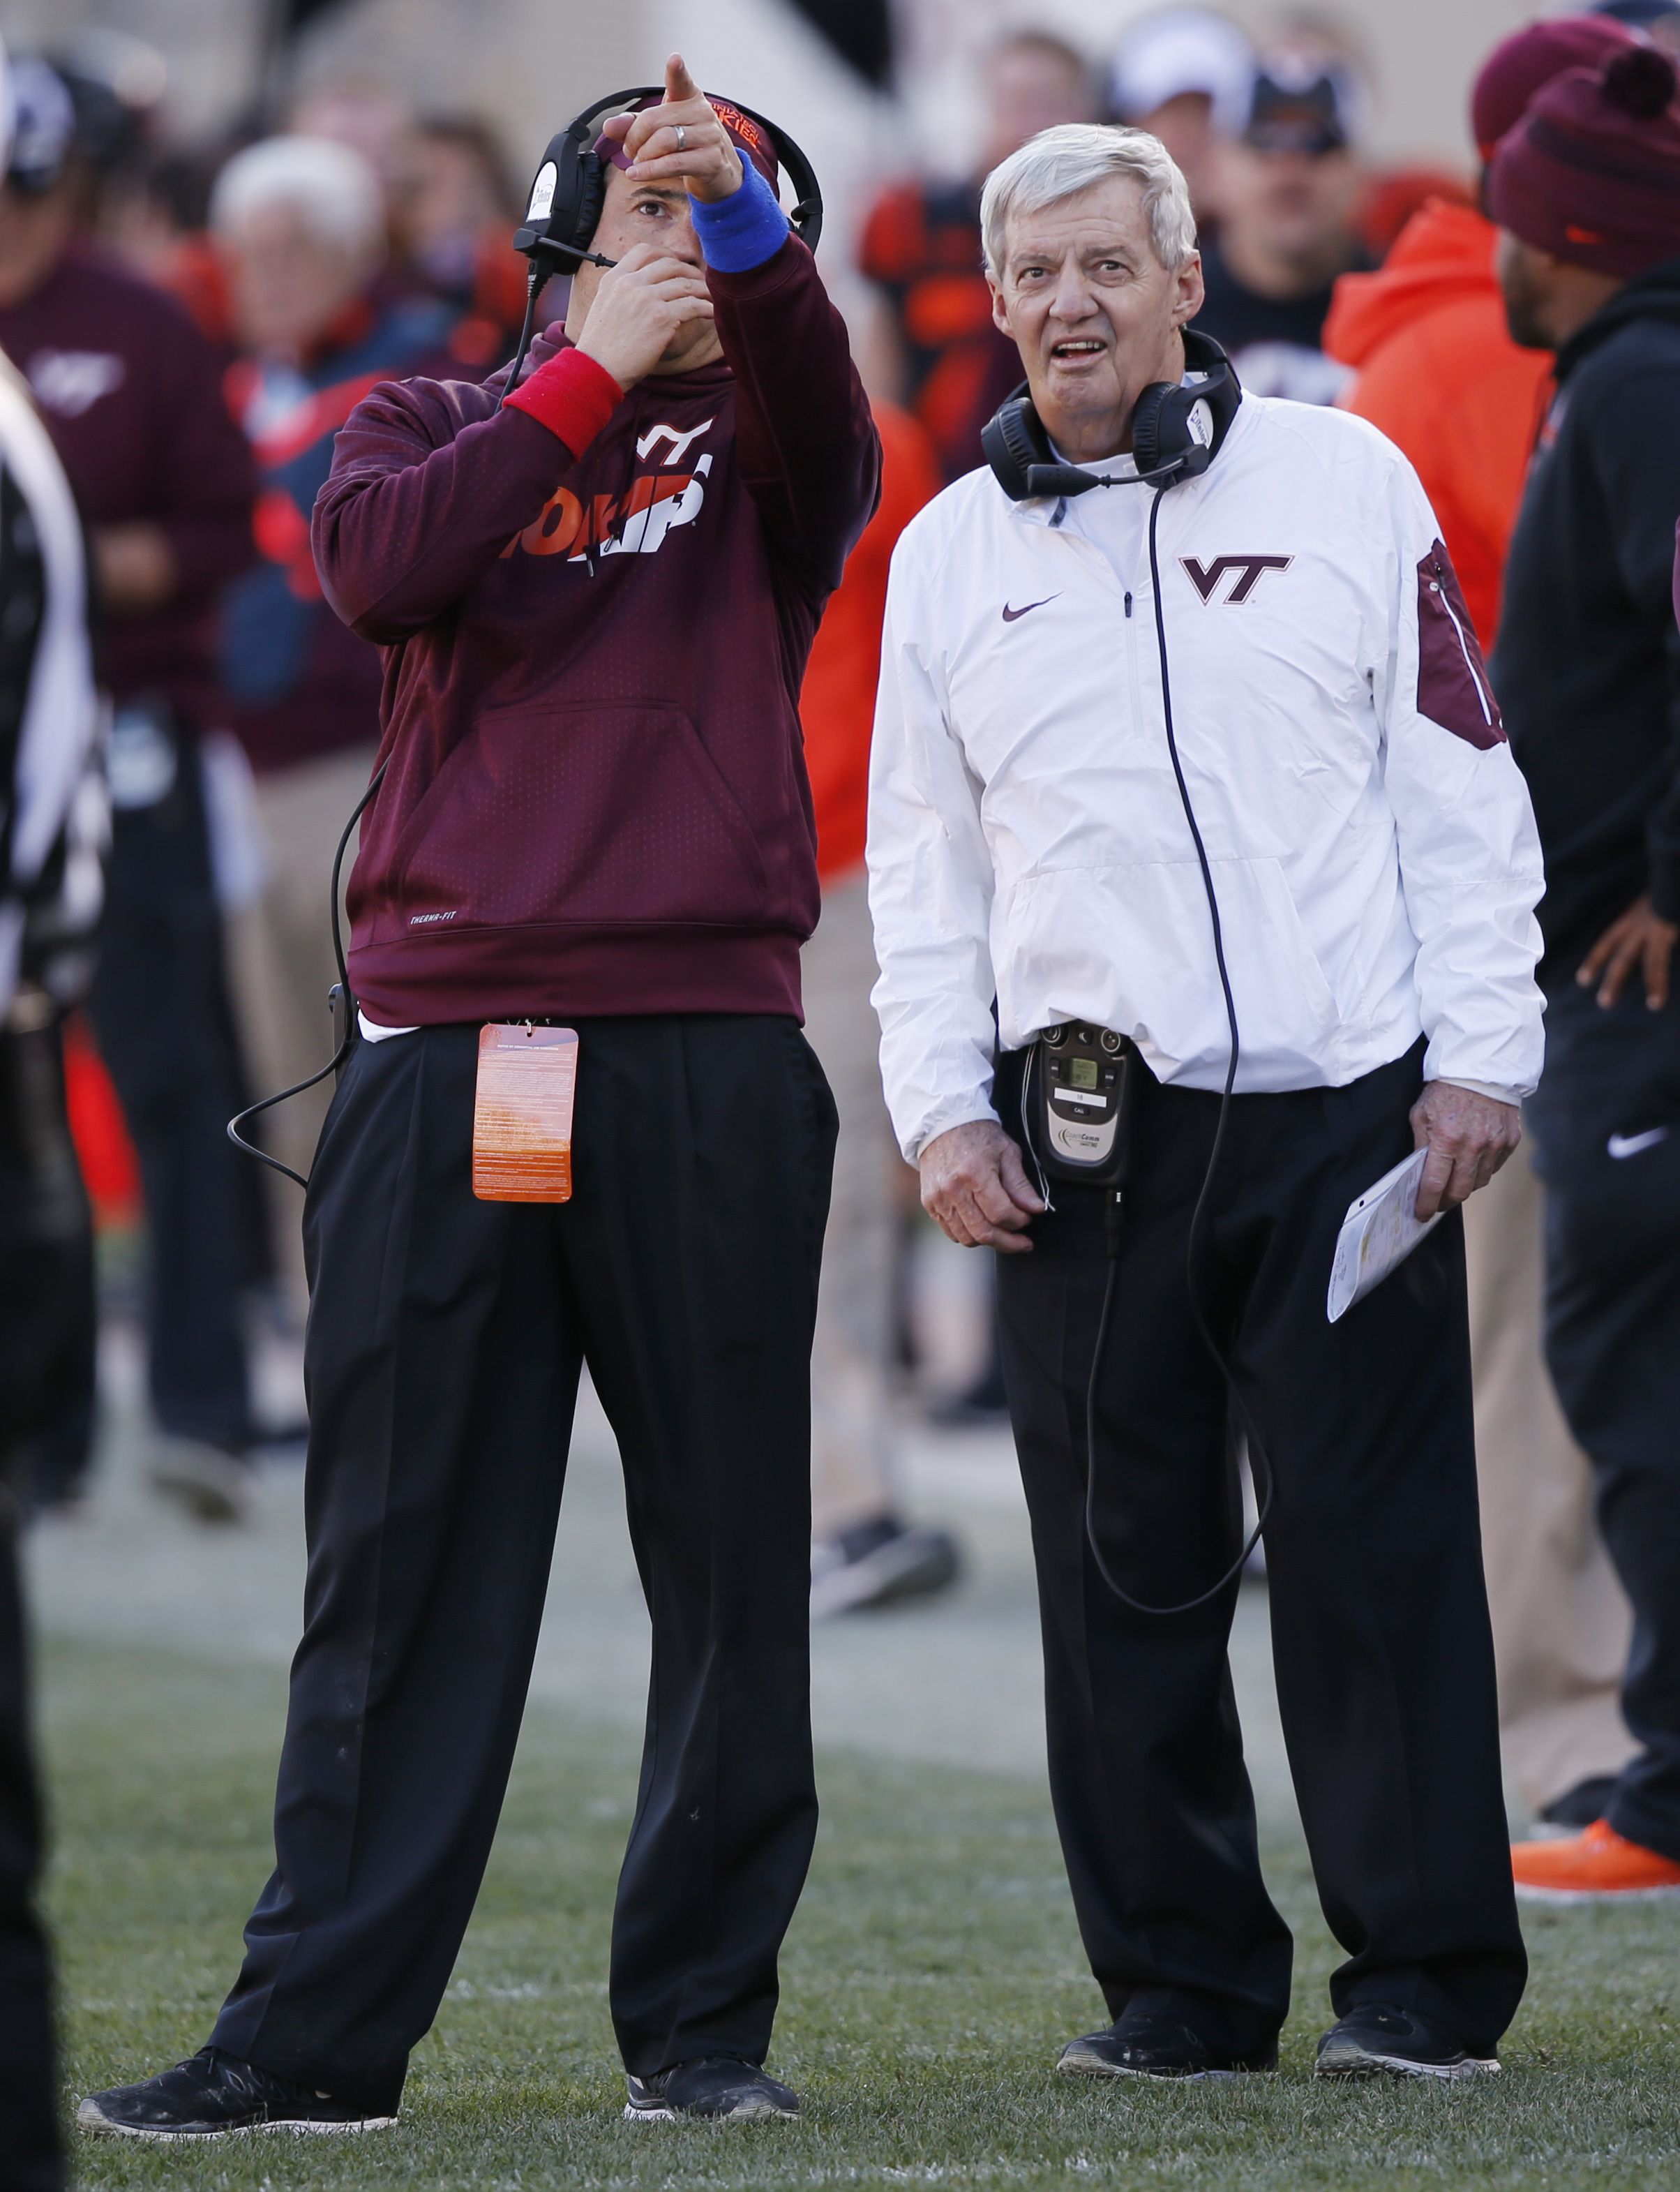 Virginia Tech assistant coach Shane Beamer, watches a replay on the scoreboard with his father, head coach Frank Beamer during the second half of an NCAA college football game in Blacksburg, Va., Saturday, Nov. 21, 2015.  North Carolina won the game 30-27